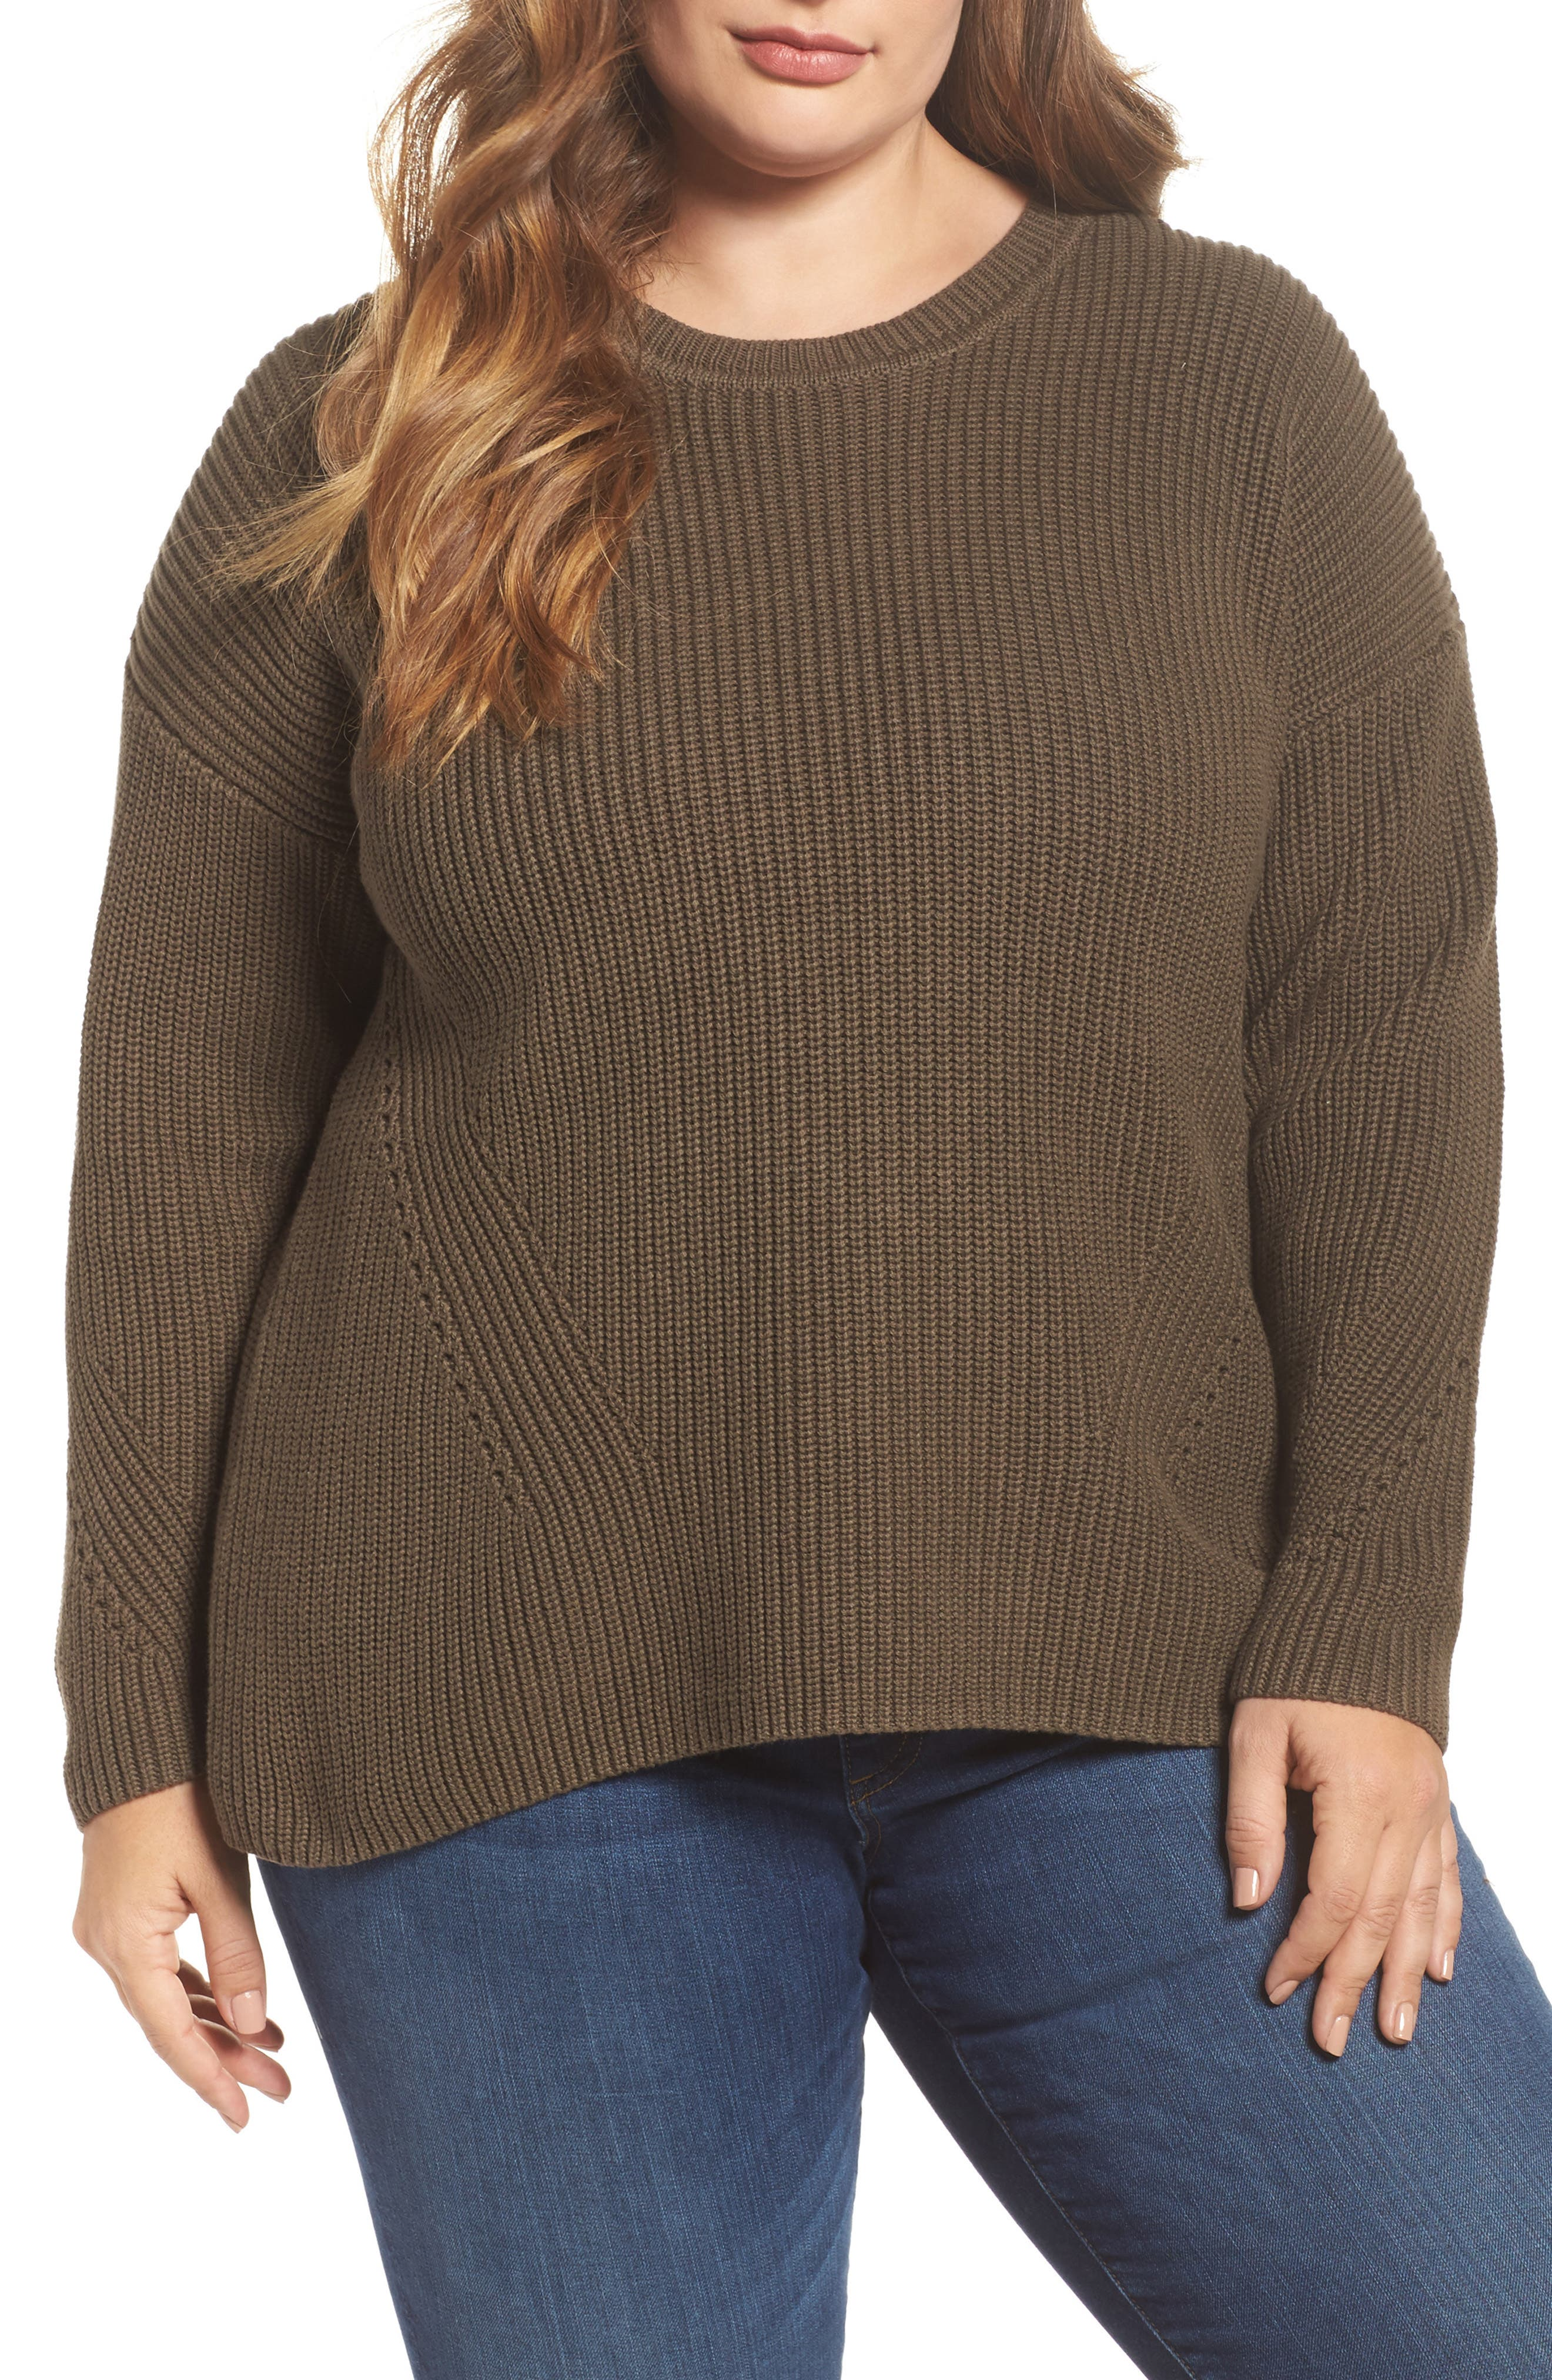 Lace-Up Back Sweater,                             Main thumbnail 1, color,                             Olive